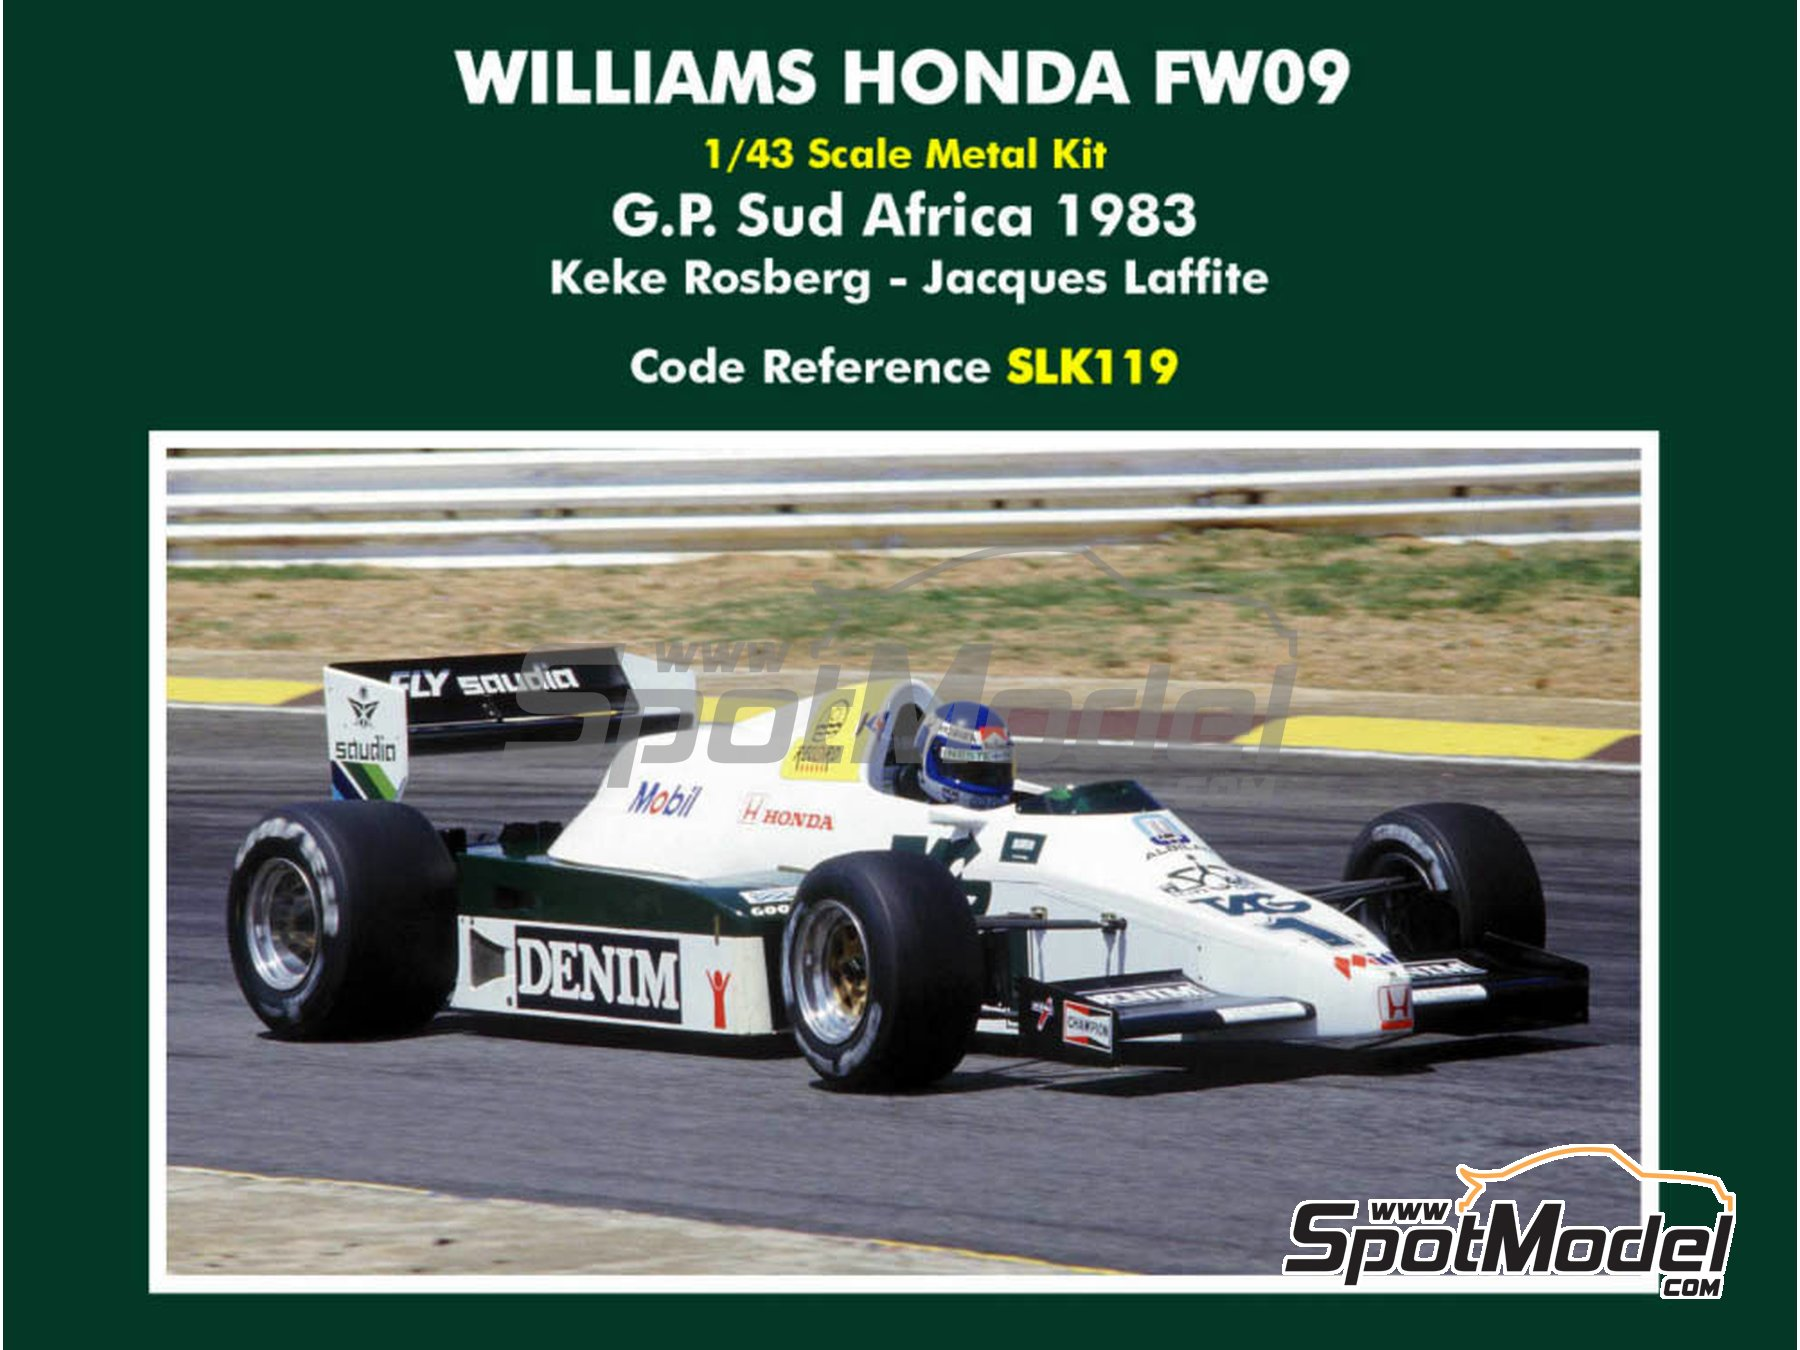 Image 1: Williams Honda FW09 TAG Denim - South African Formula 1 Grand Prix 1983 | Model car kit in 1/43 scale manufactured by Tameo Kits (ref. SLK119)